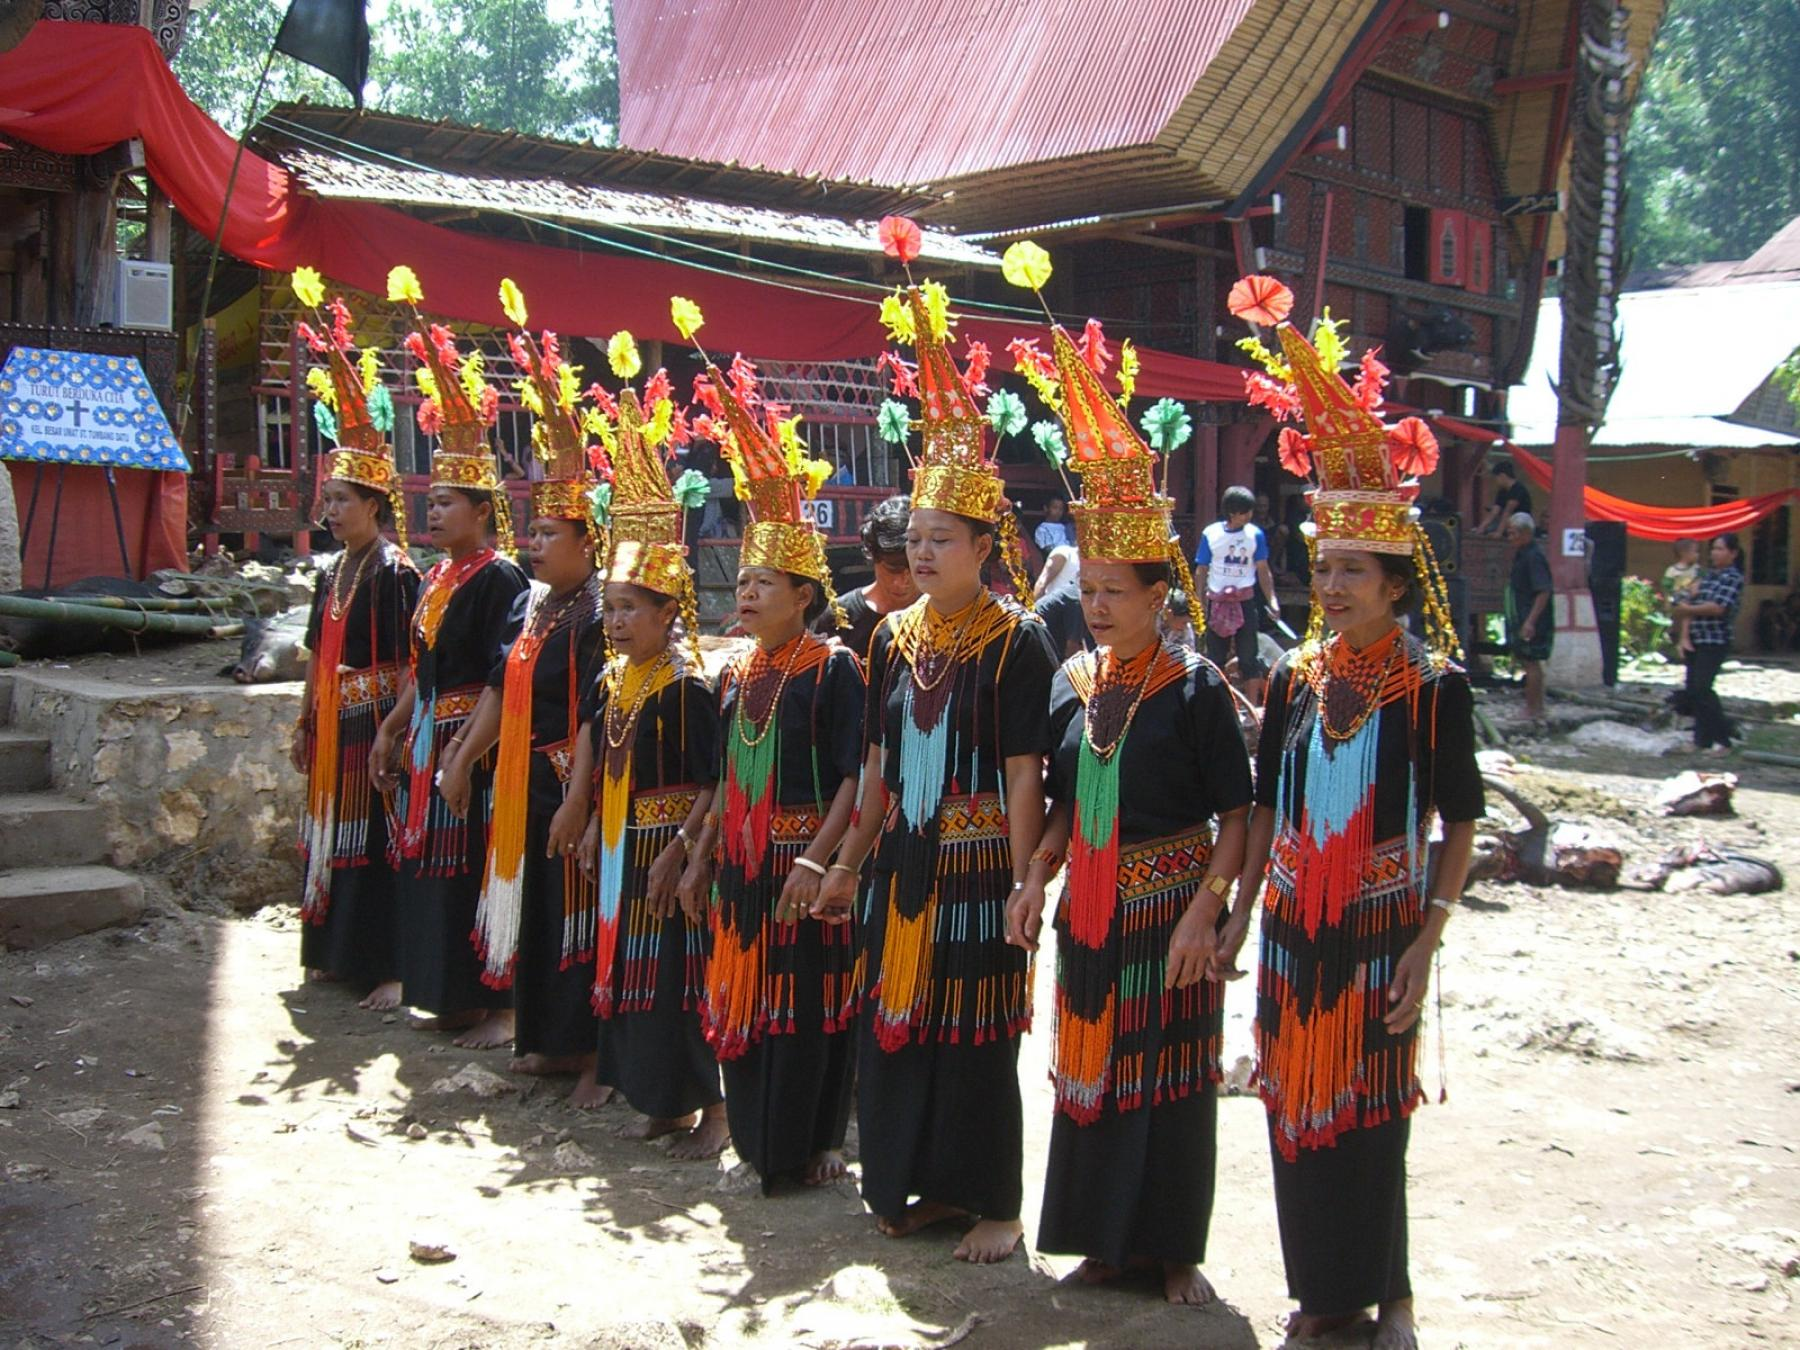 An eye-and-mind-opening cultural trip to Indonesia – 7D/6N starting at Sulawesi, Indonesia